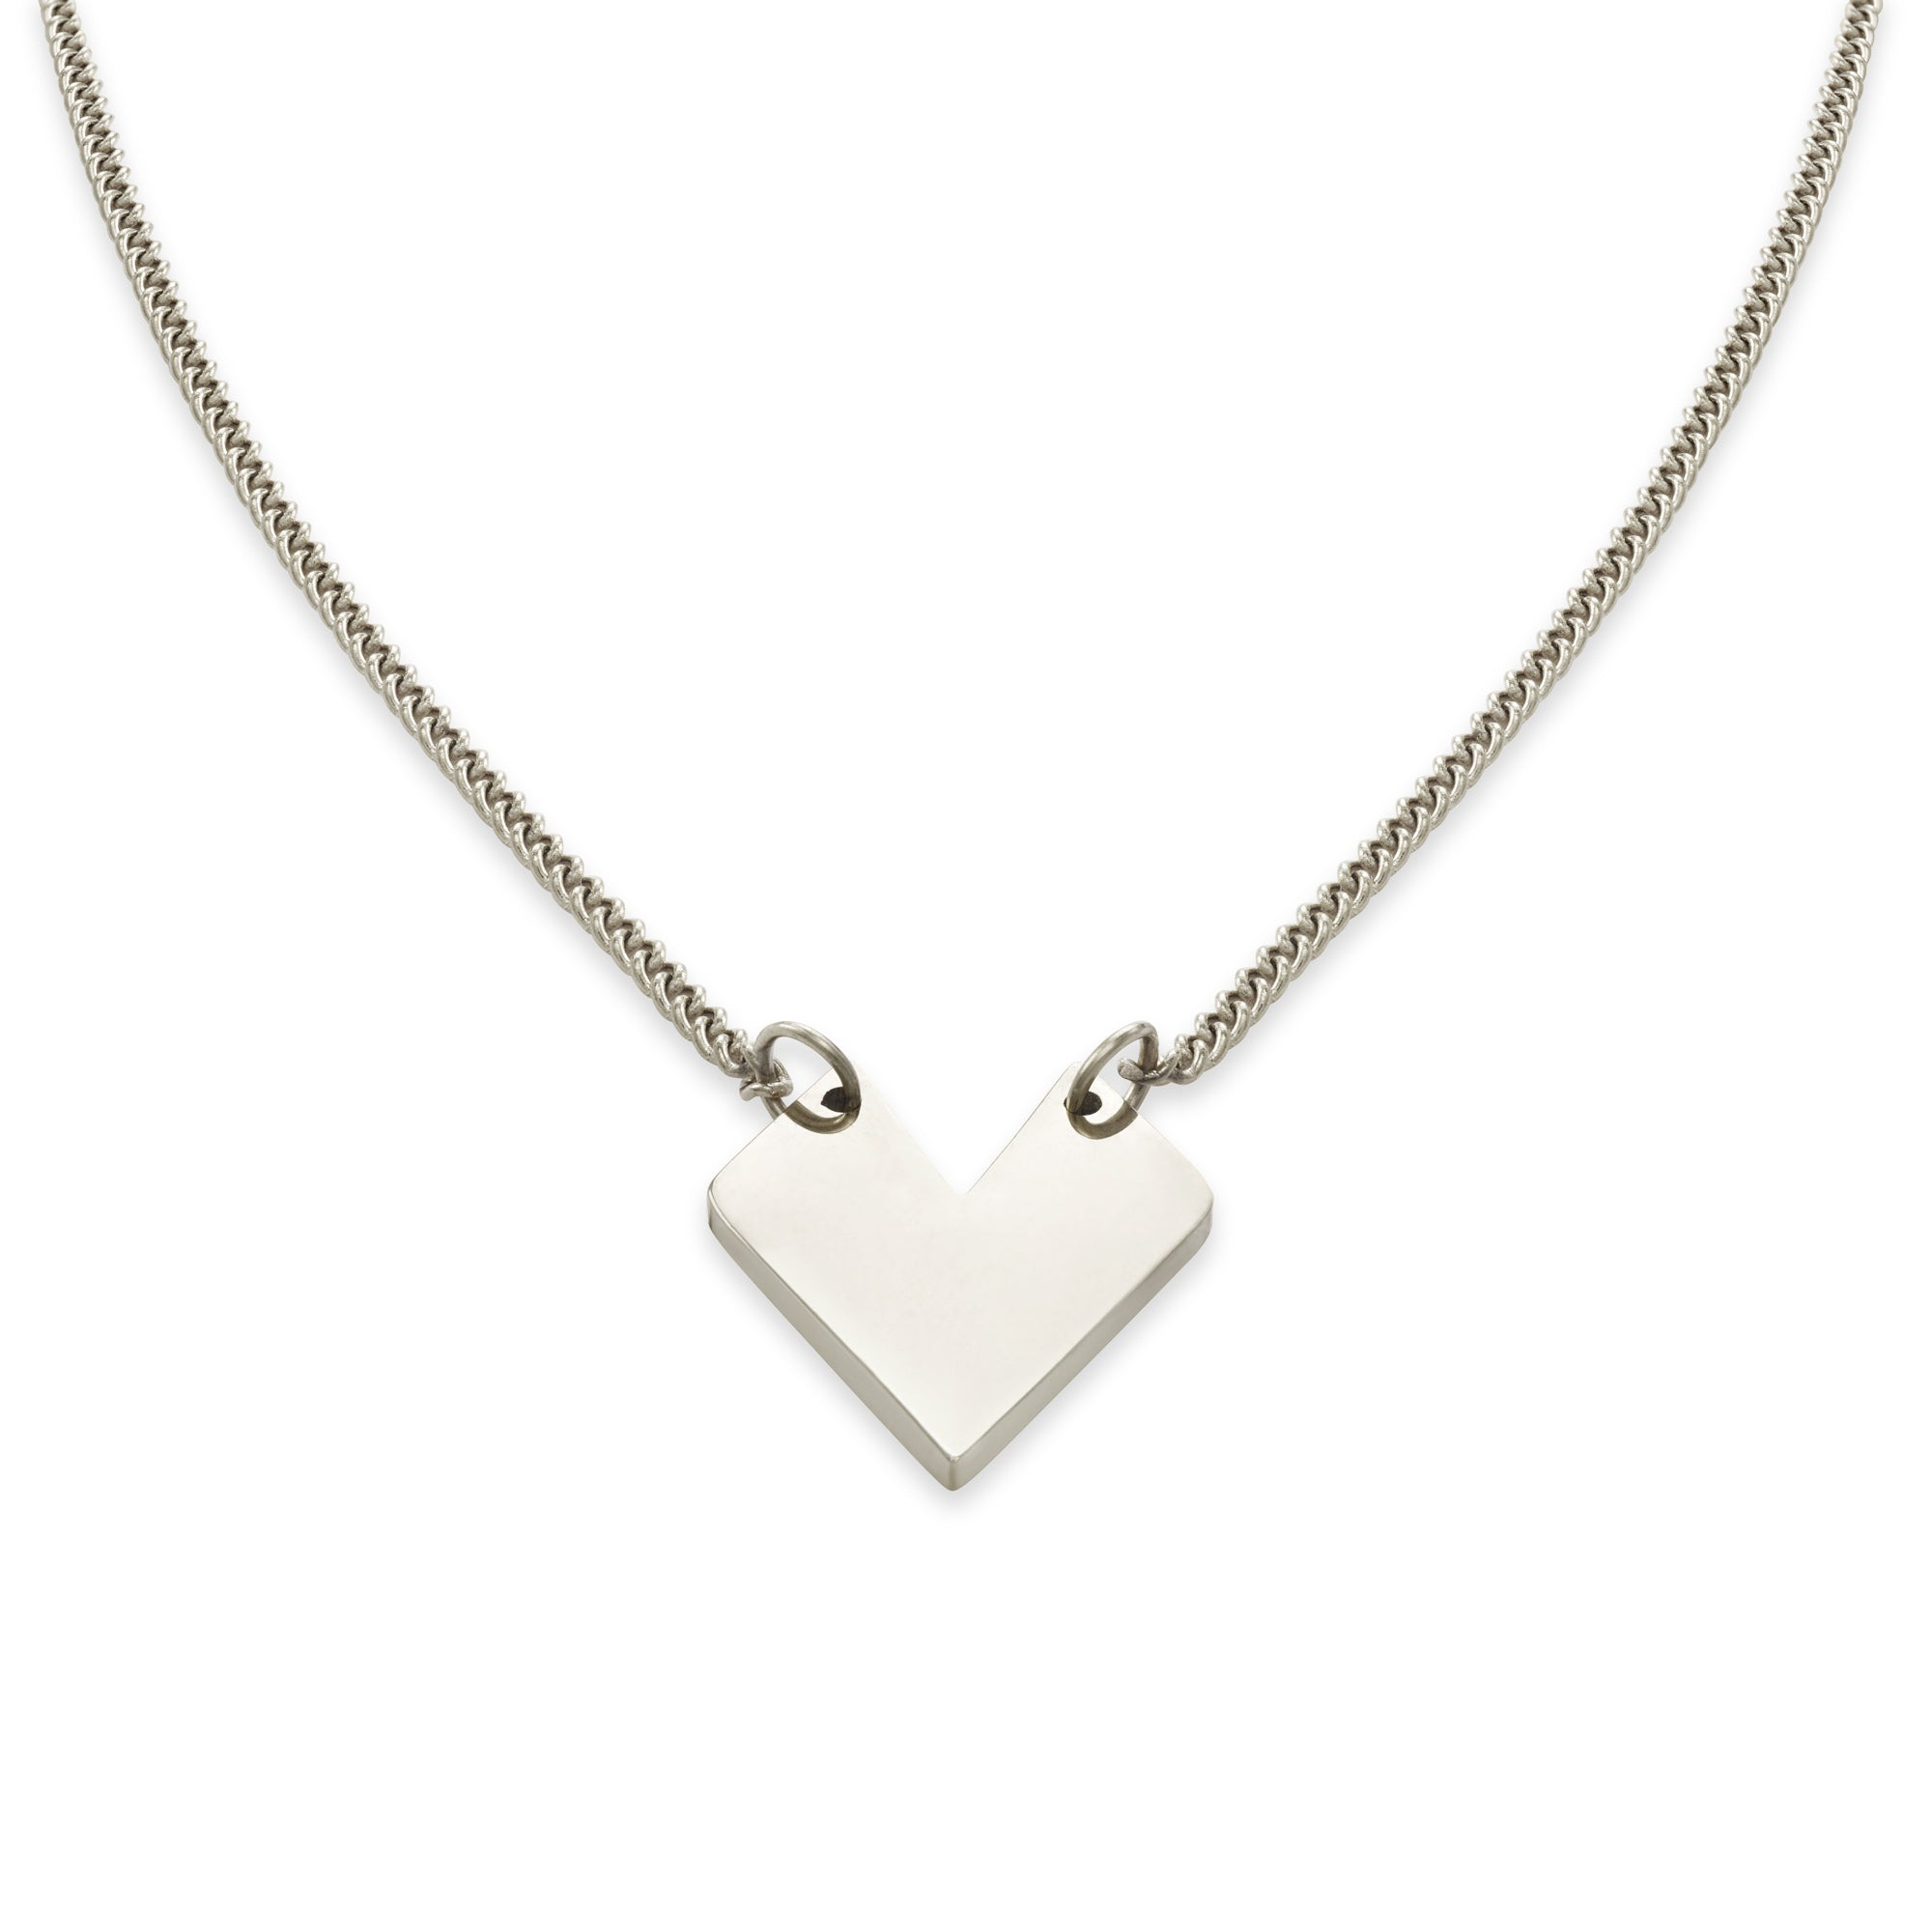 AMOTI COLLIER Argent